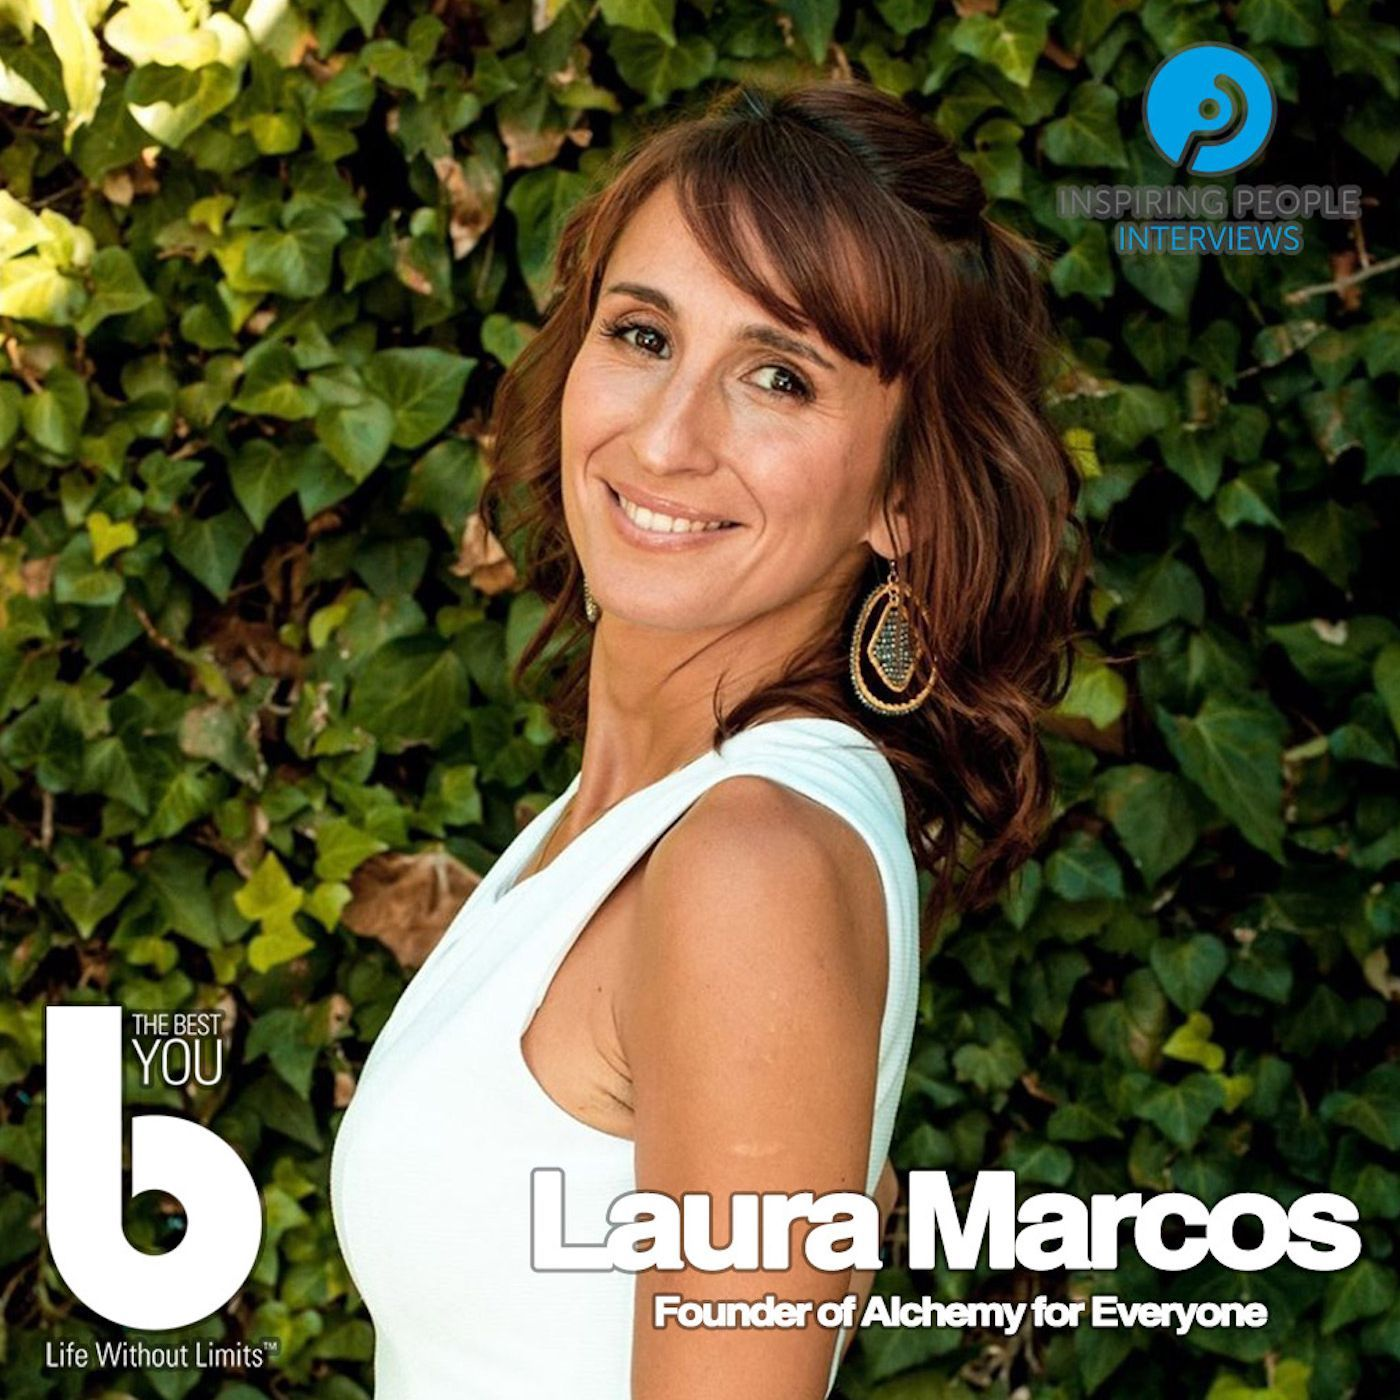 Listen to Episode #63: Laura Marcos